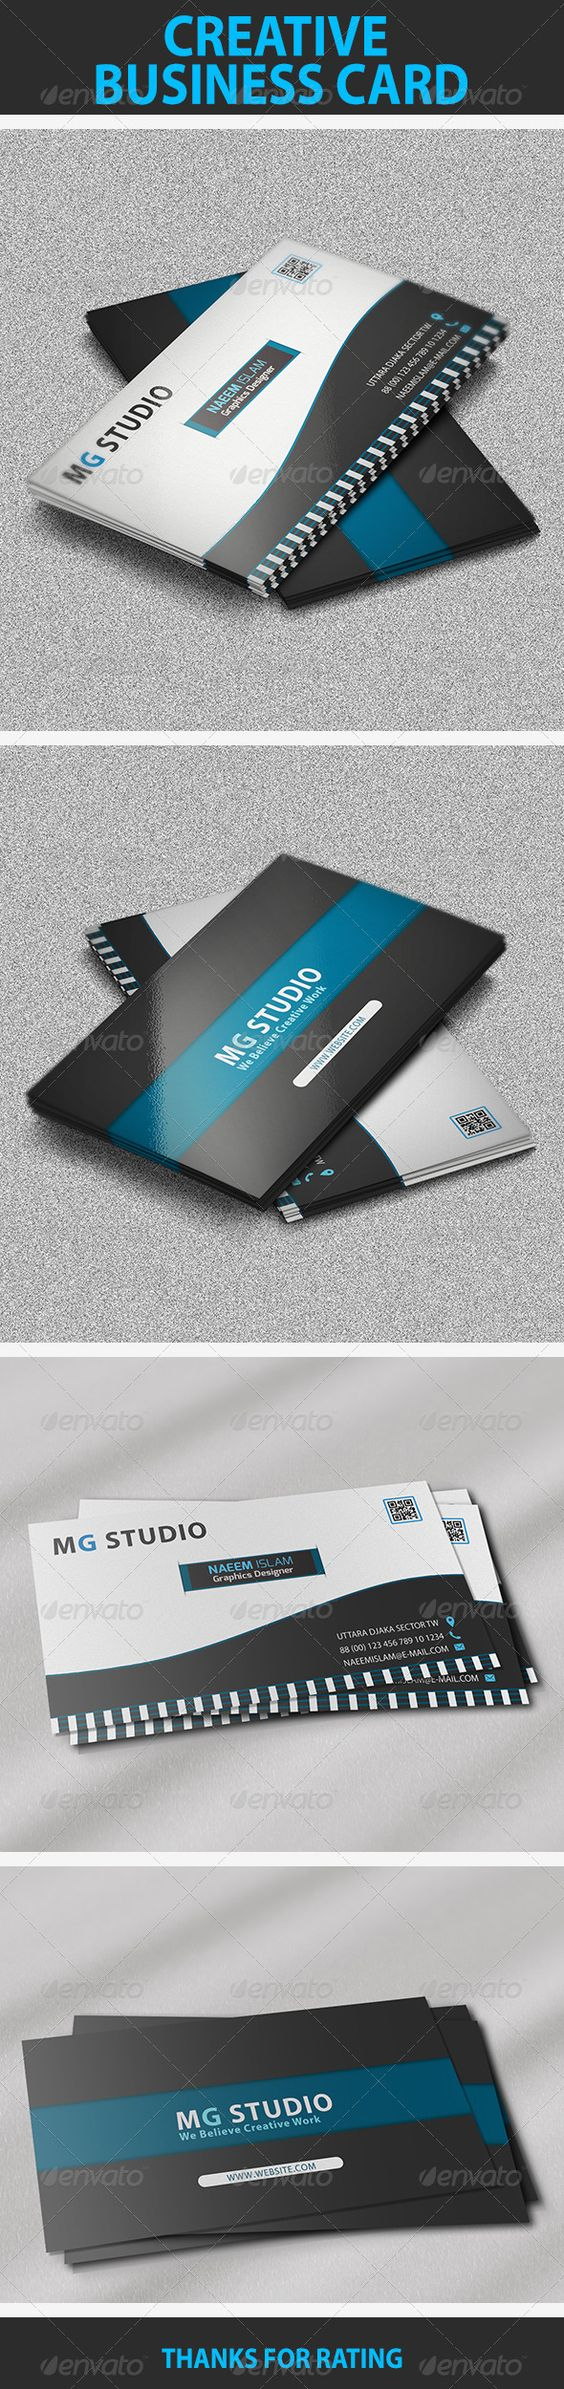 Creative Business Card Features:  • Easy to edit.  • Optimized for printing / 300 Dpi.  • CMYK color mode.  • 3.5×2 inch dimension.  • 0.25 Bleed.  • Help Guide Included.  • Adobe photoshop CS6 version.